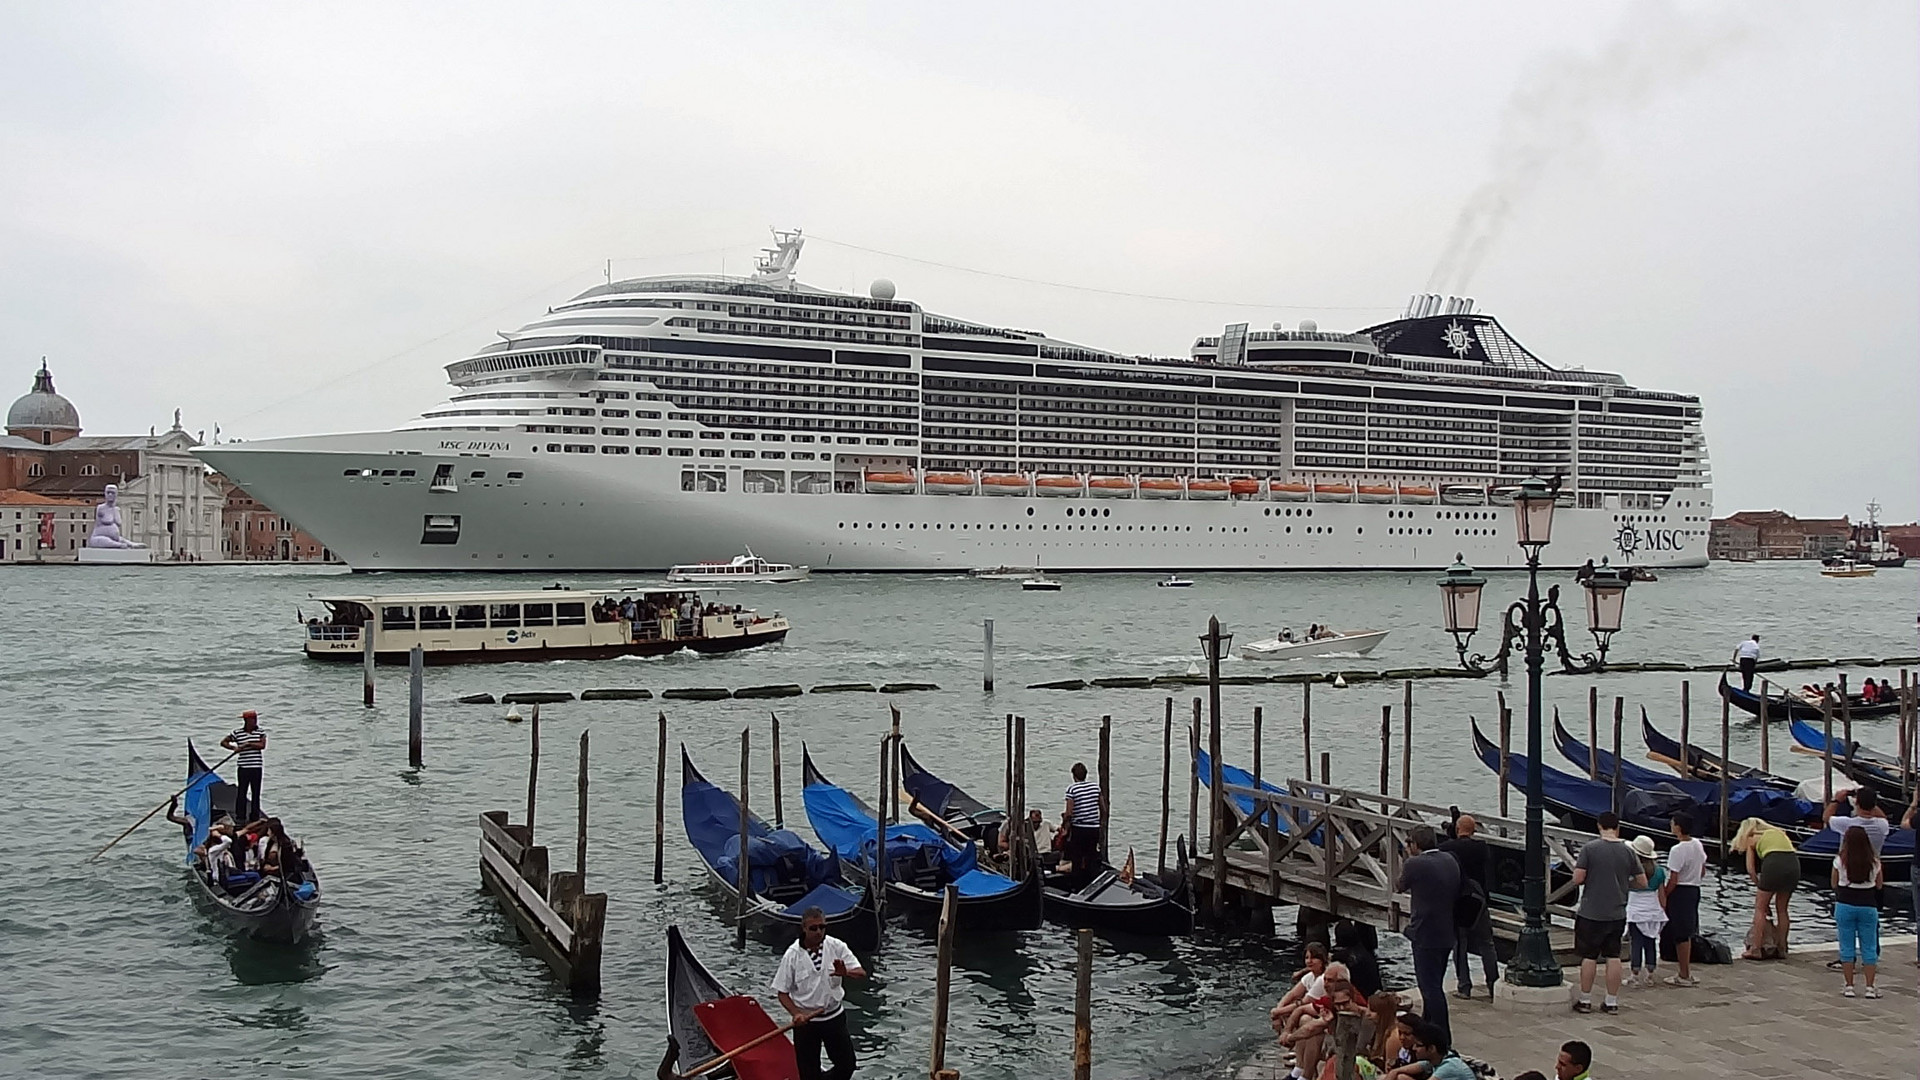 MSC DIVINA leaving Venice